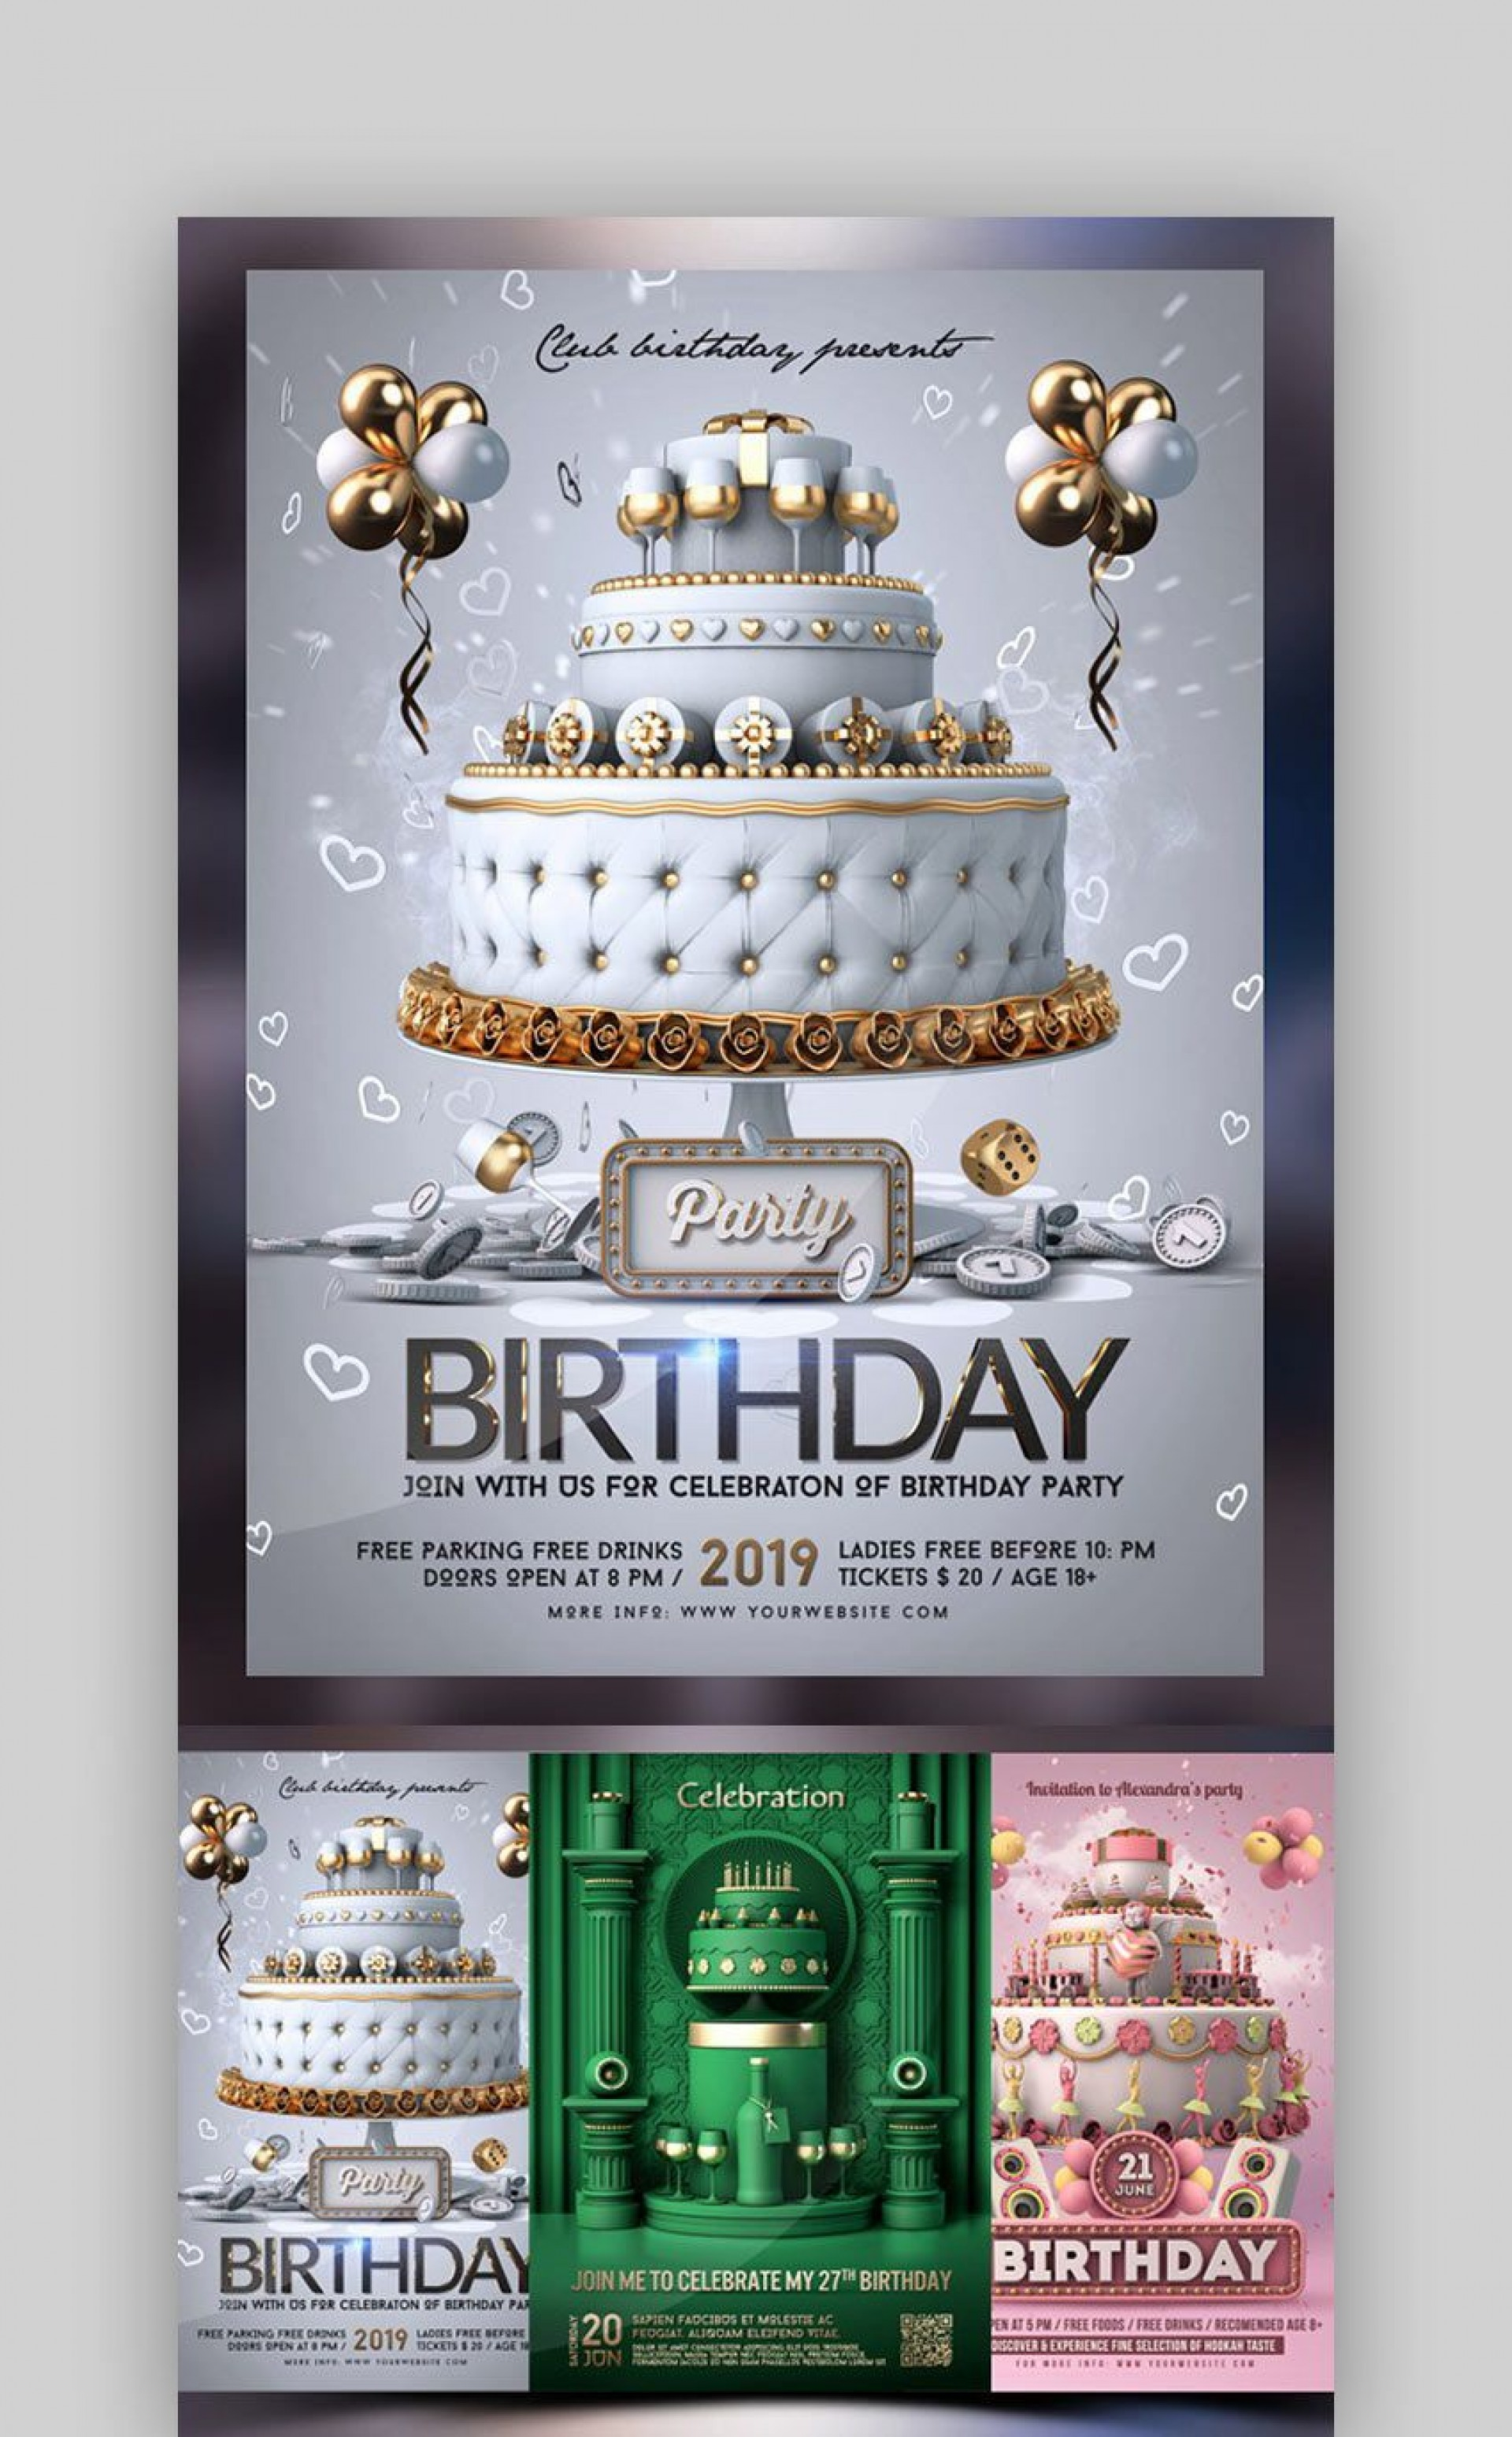 003 Unique Birthday Party Invitation Flyer Template Free Download Image 1920